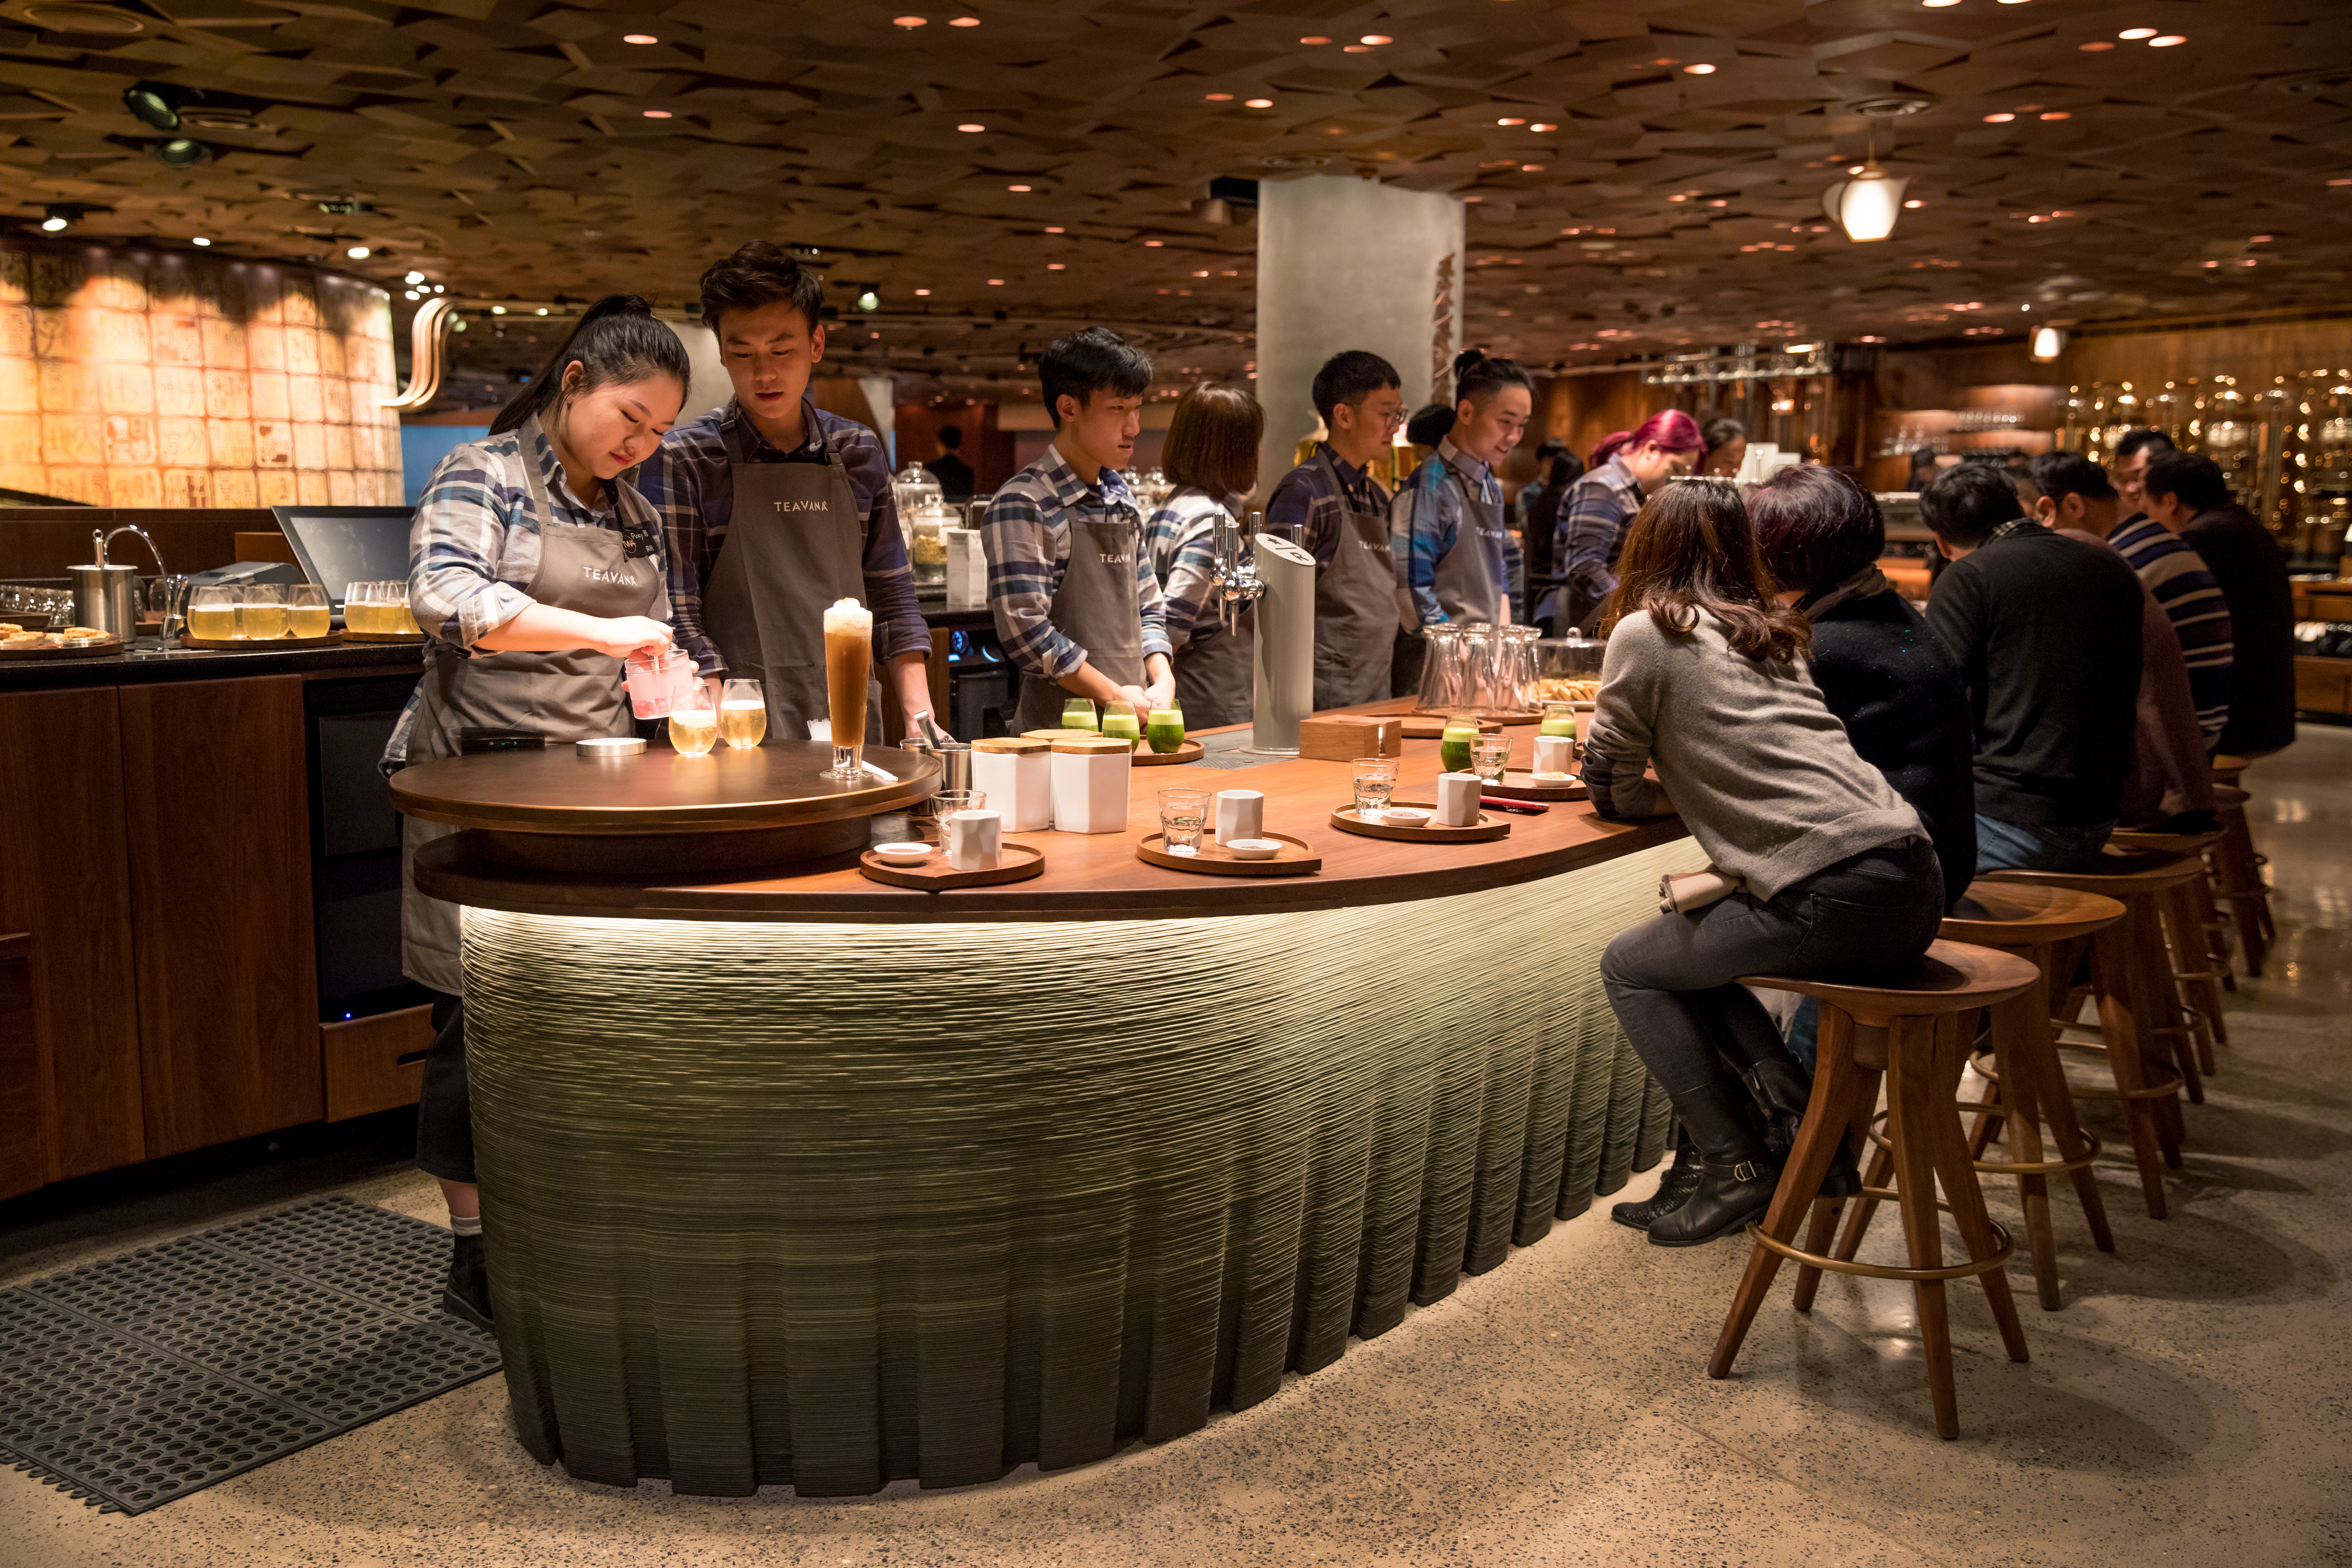 Partners work at the Teavana tea bar in the new Starbucks Roastery in Shanghai, China.